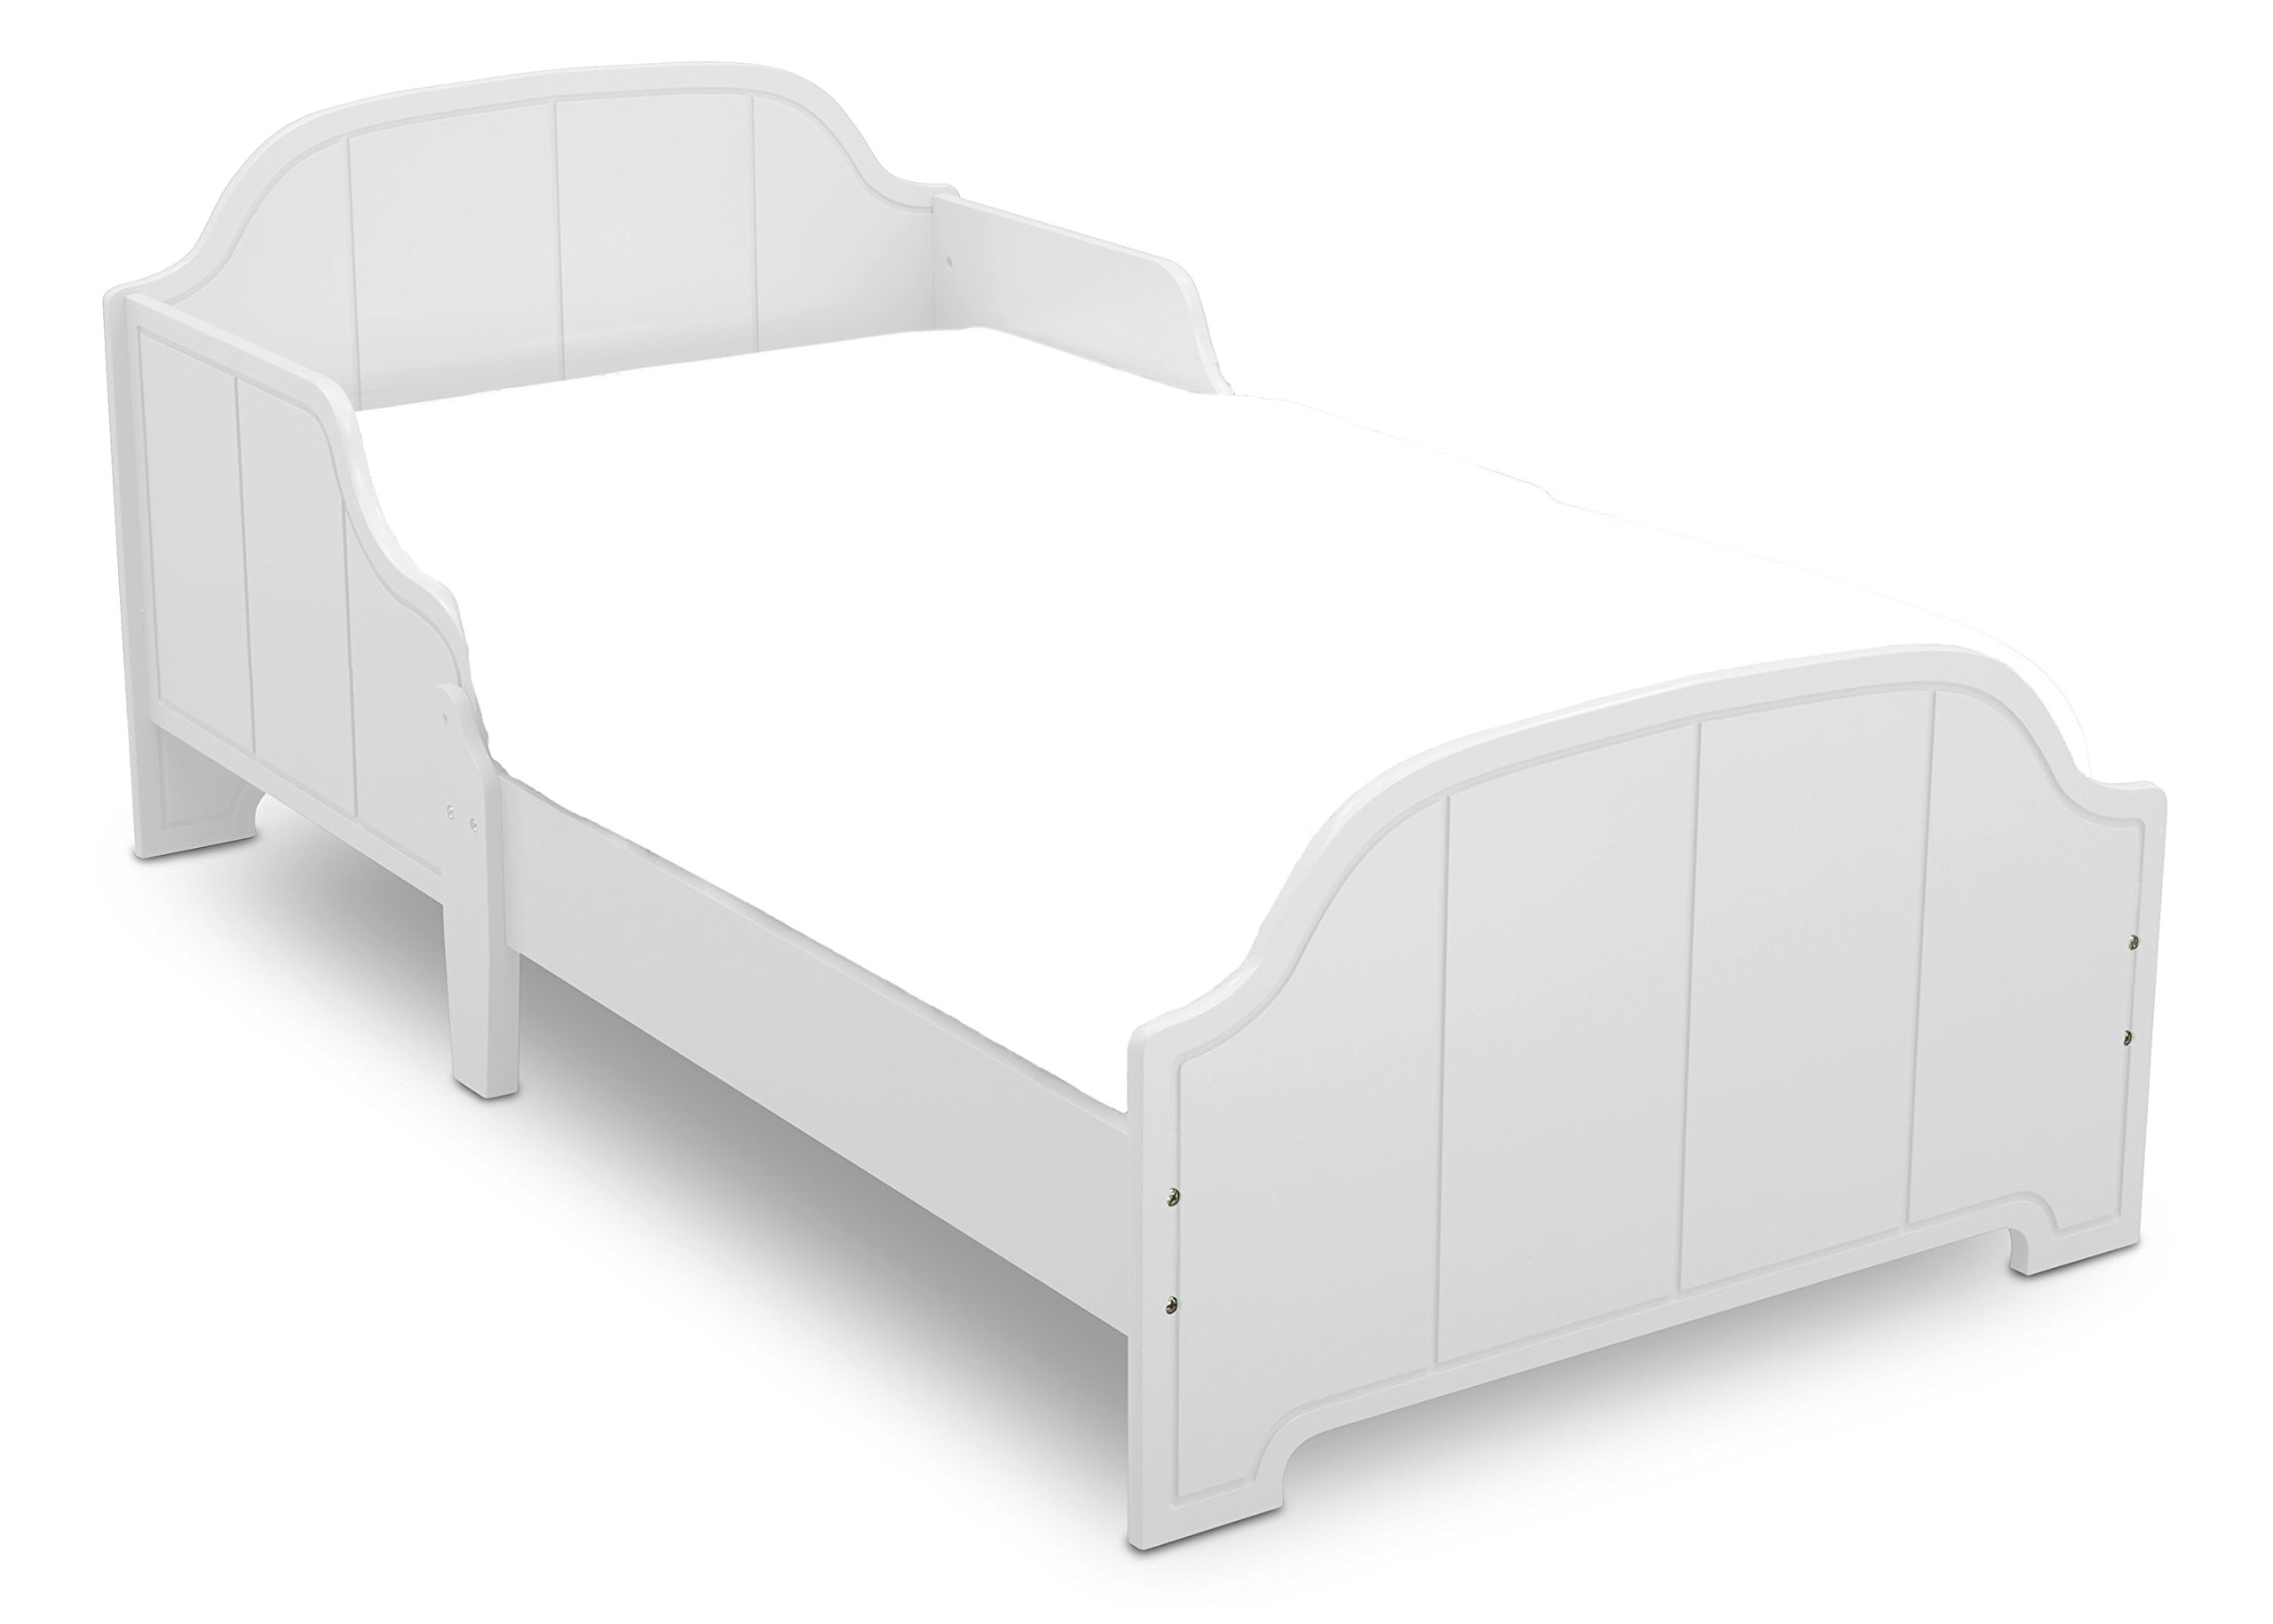 Delta Children MySize Toddler Bed, Bianca White